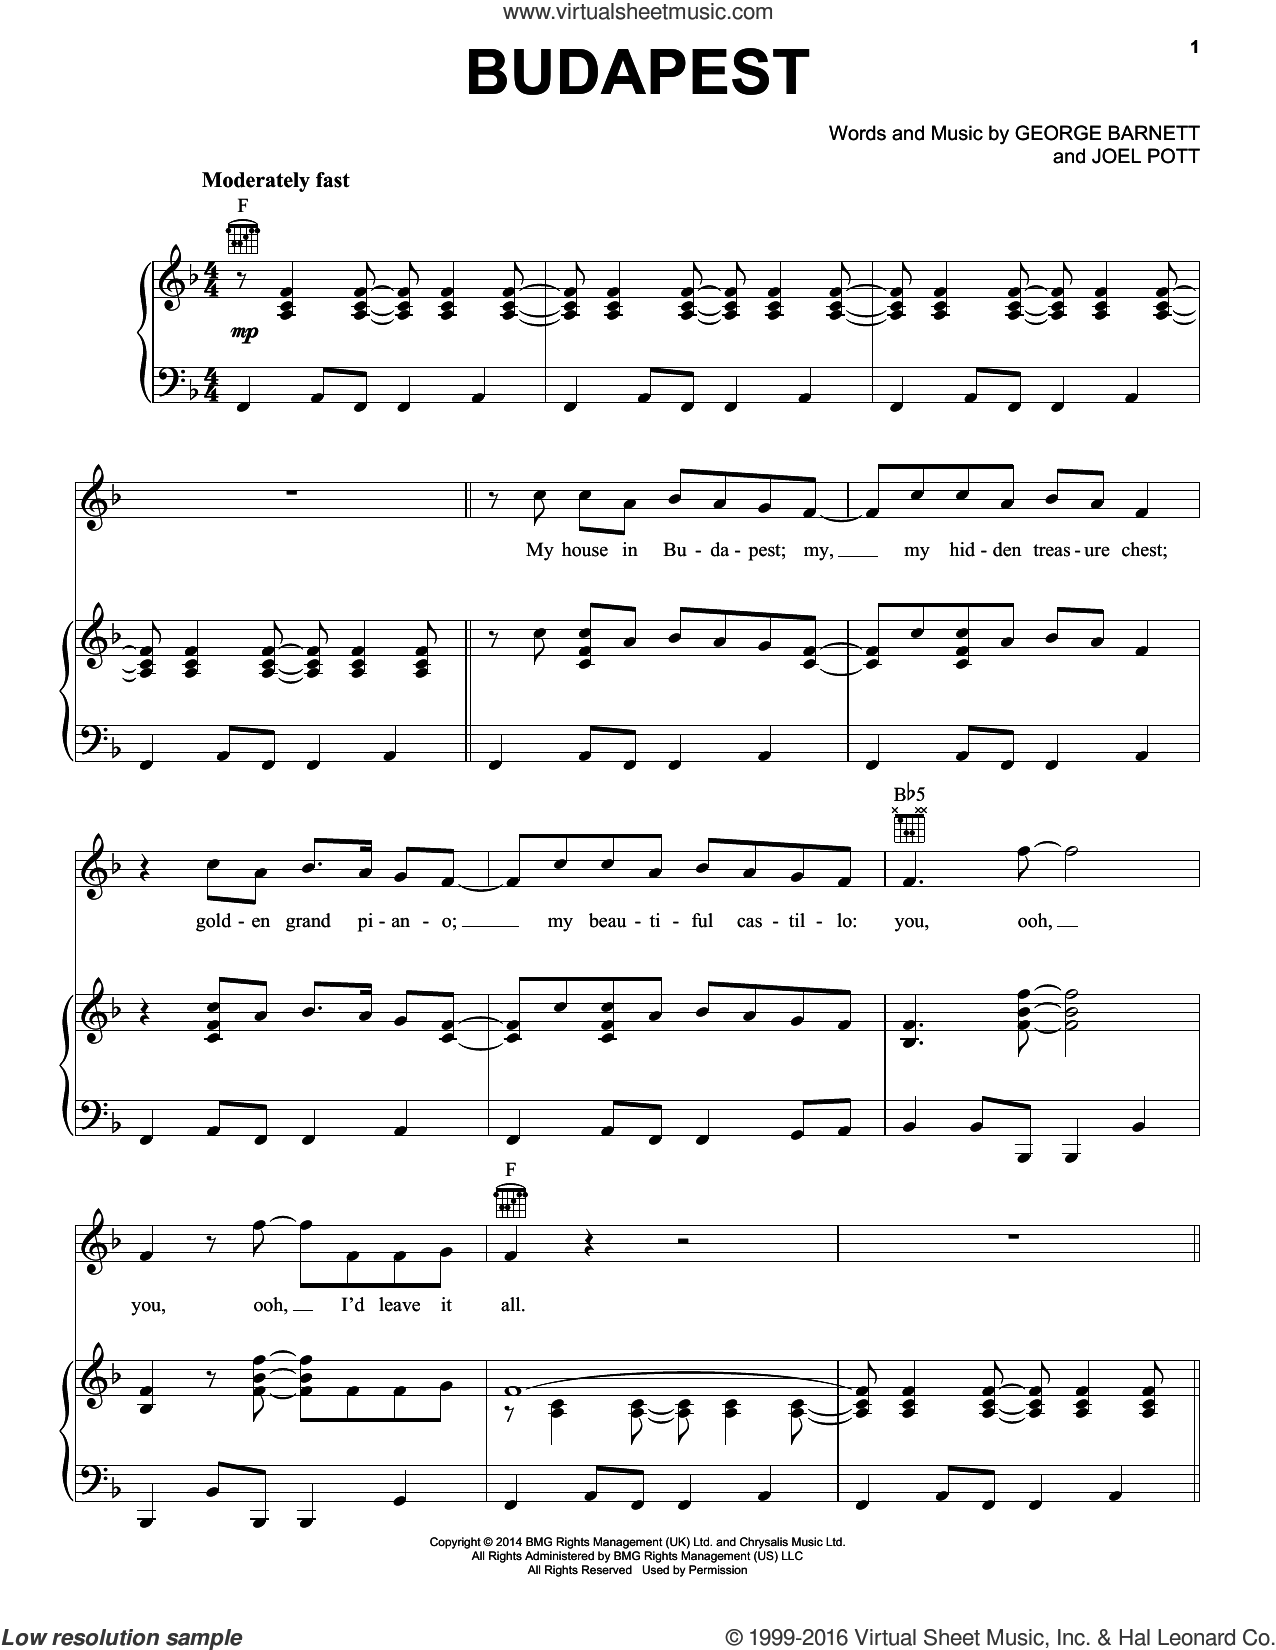 Budapest sheet music for voice, piano or guitar plus backing track by George Ezra, George Barnett and Joel Pott, intermediate skill level